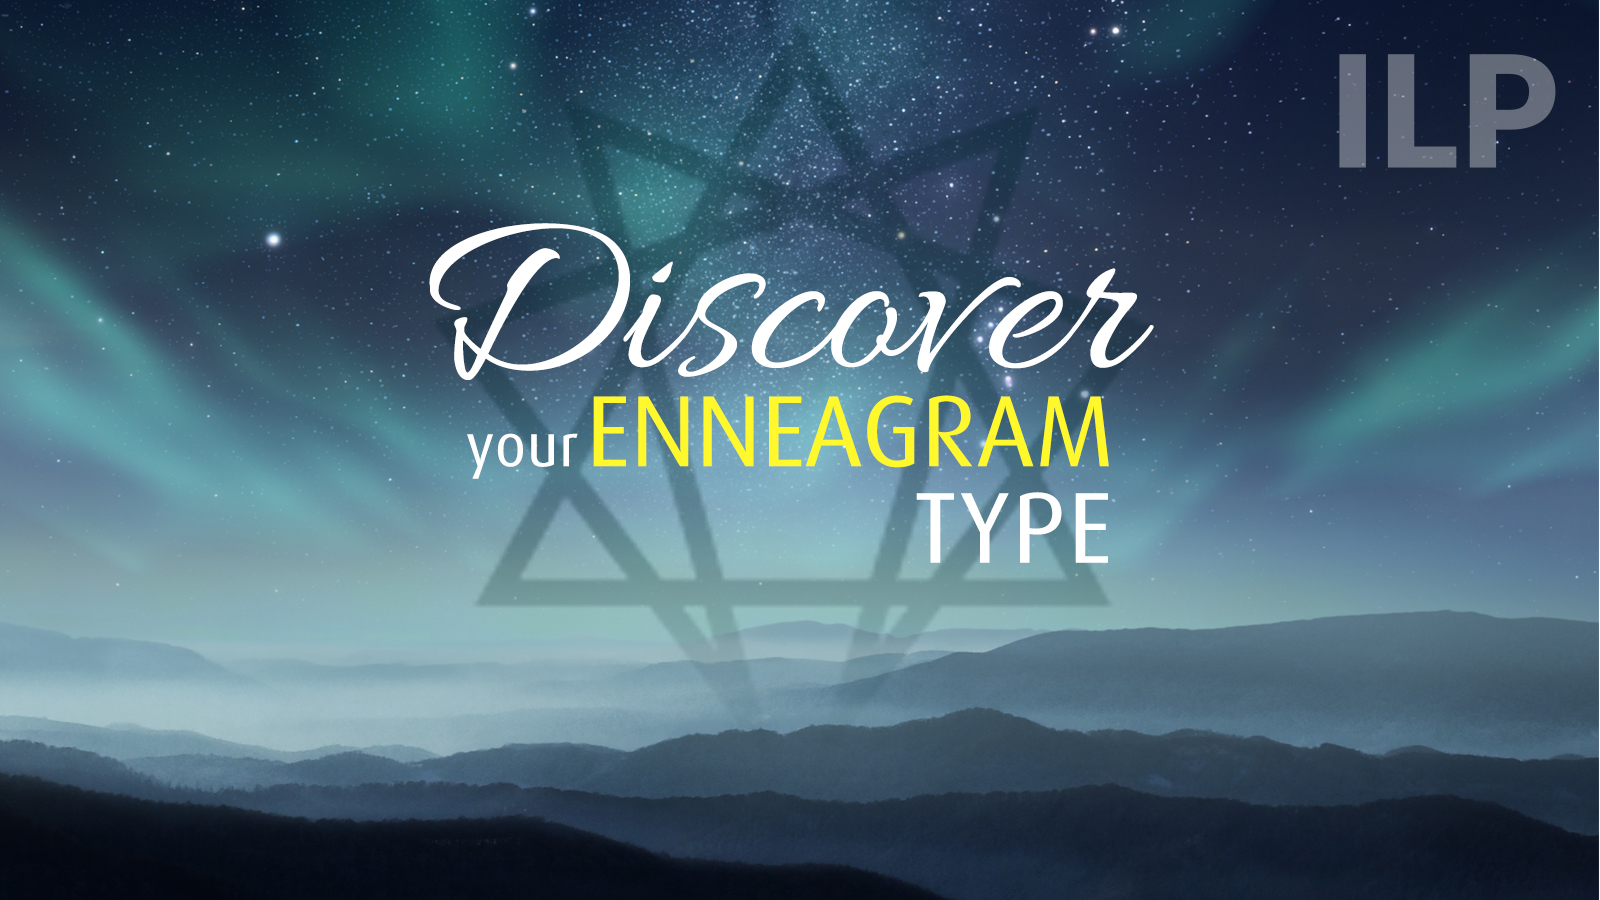 Introduction to the Enneagram for Personal Growth